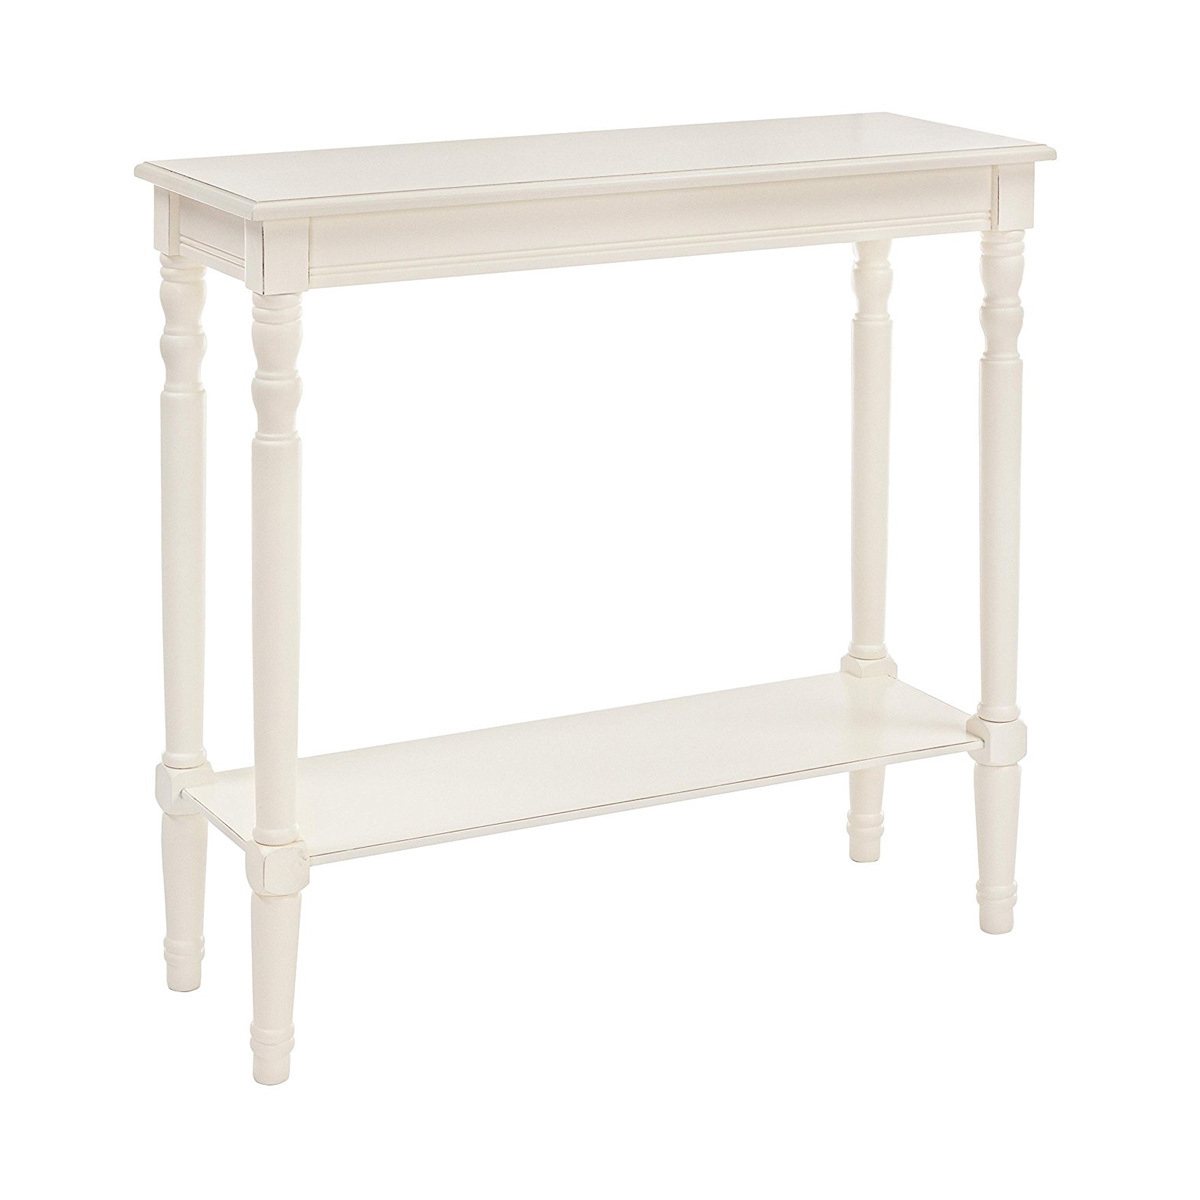 Photos 1: Bizzotto Fixed wood console l. 81 x 30 0745374